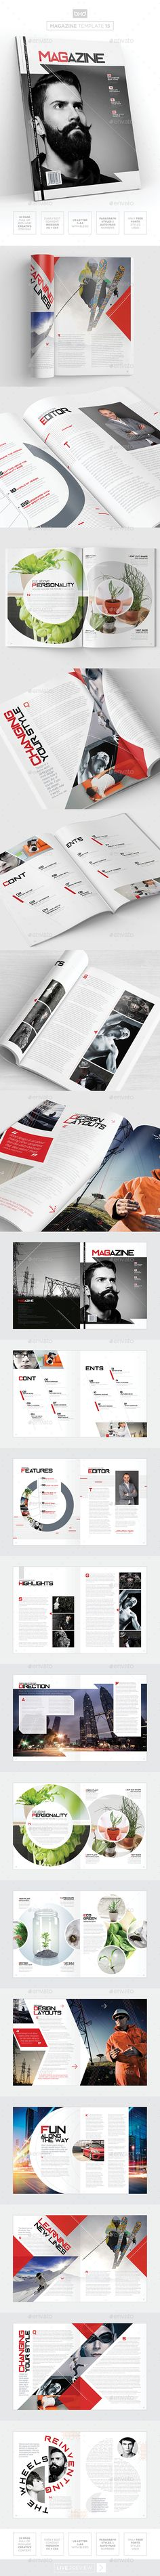 Creative and Minimalist Magazine Template Adobe InDesign INDD | Best ...